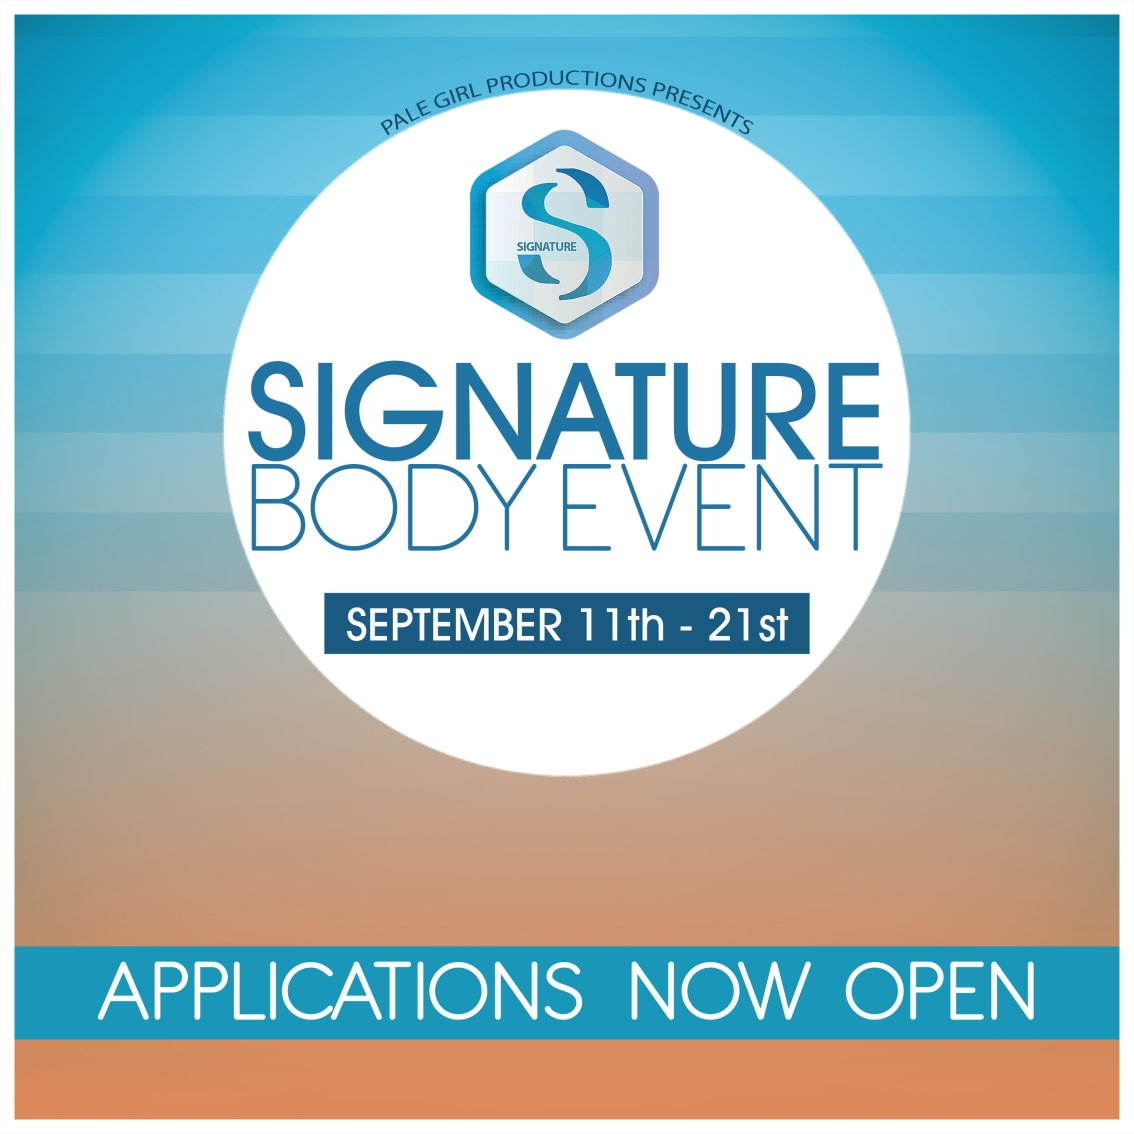 Applications Are Now Open For The Signature Event